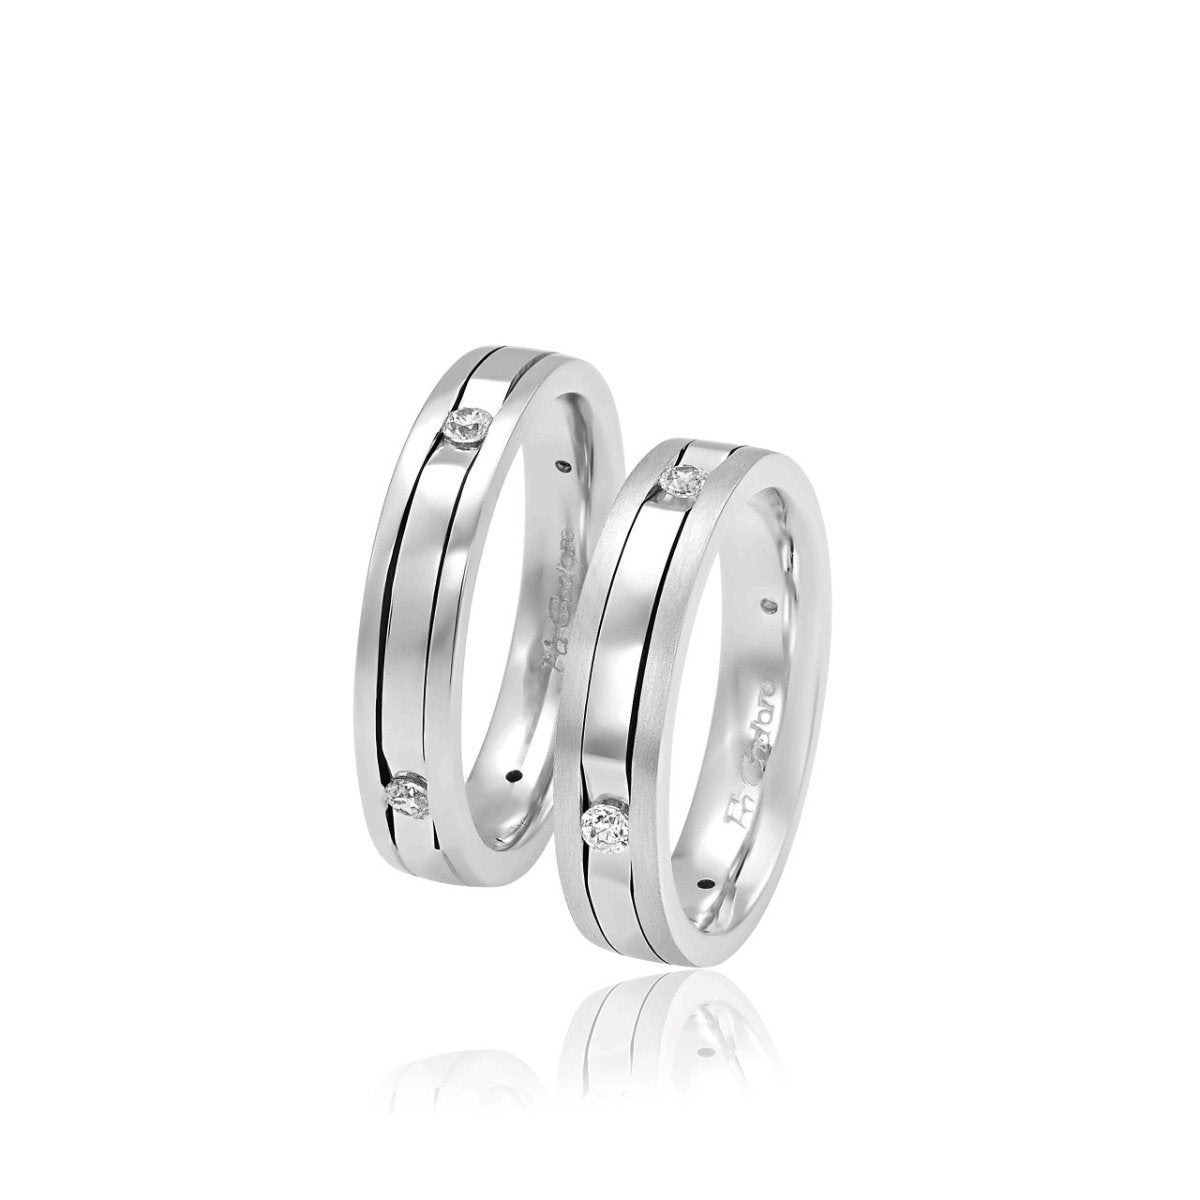 FaCad'oro WR-24 14ct Gold Wedding Rings - Goldy Jewelry Store